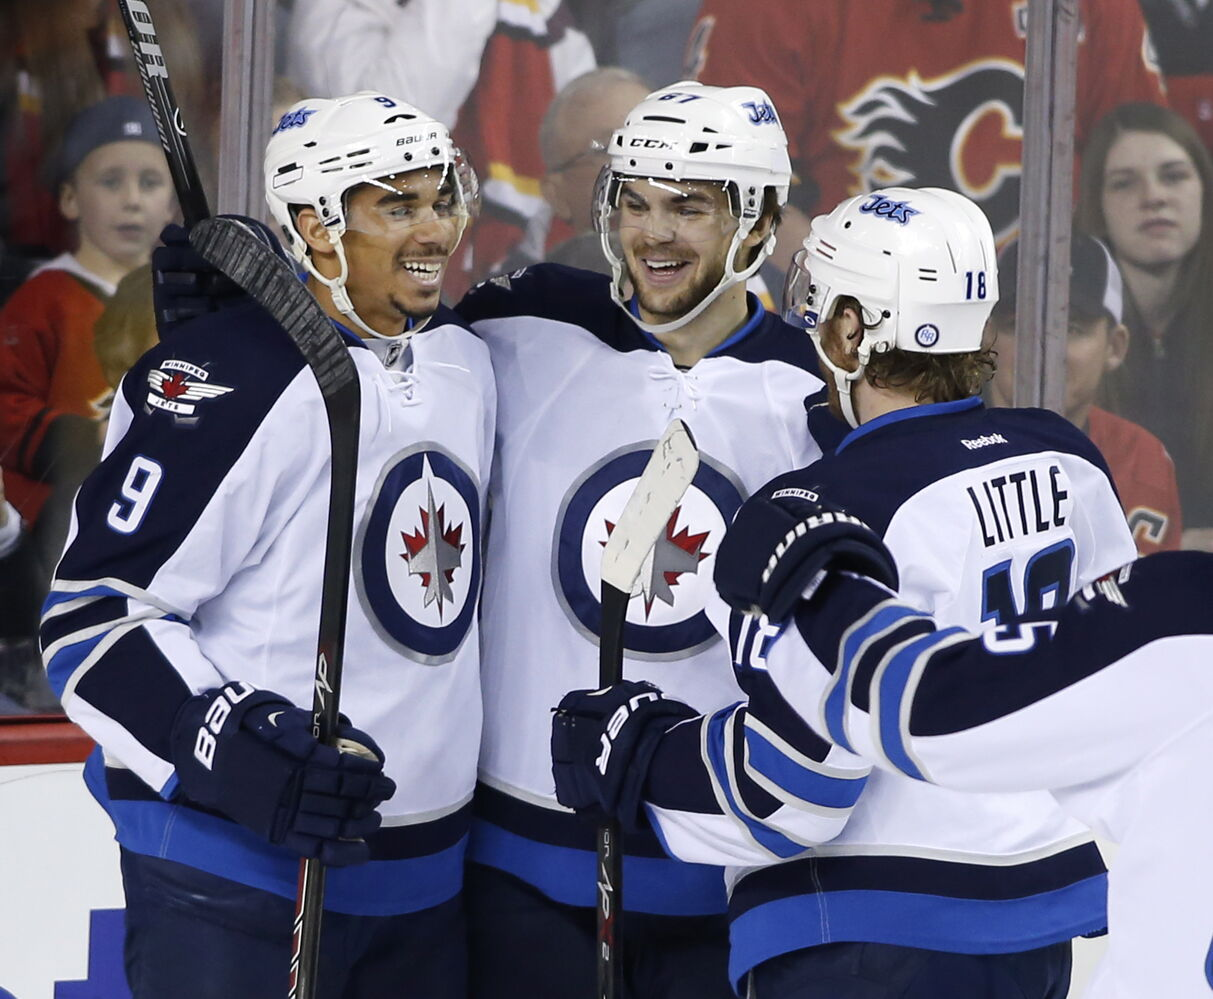 Winnipeg Jets' Michael Frolik, centre, celebrates his first-period goal against the Calgary Flames with Evander Kane, left, and Bryan Little during Friday's game. (Larry MacDougal / The Canadian Press)